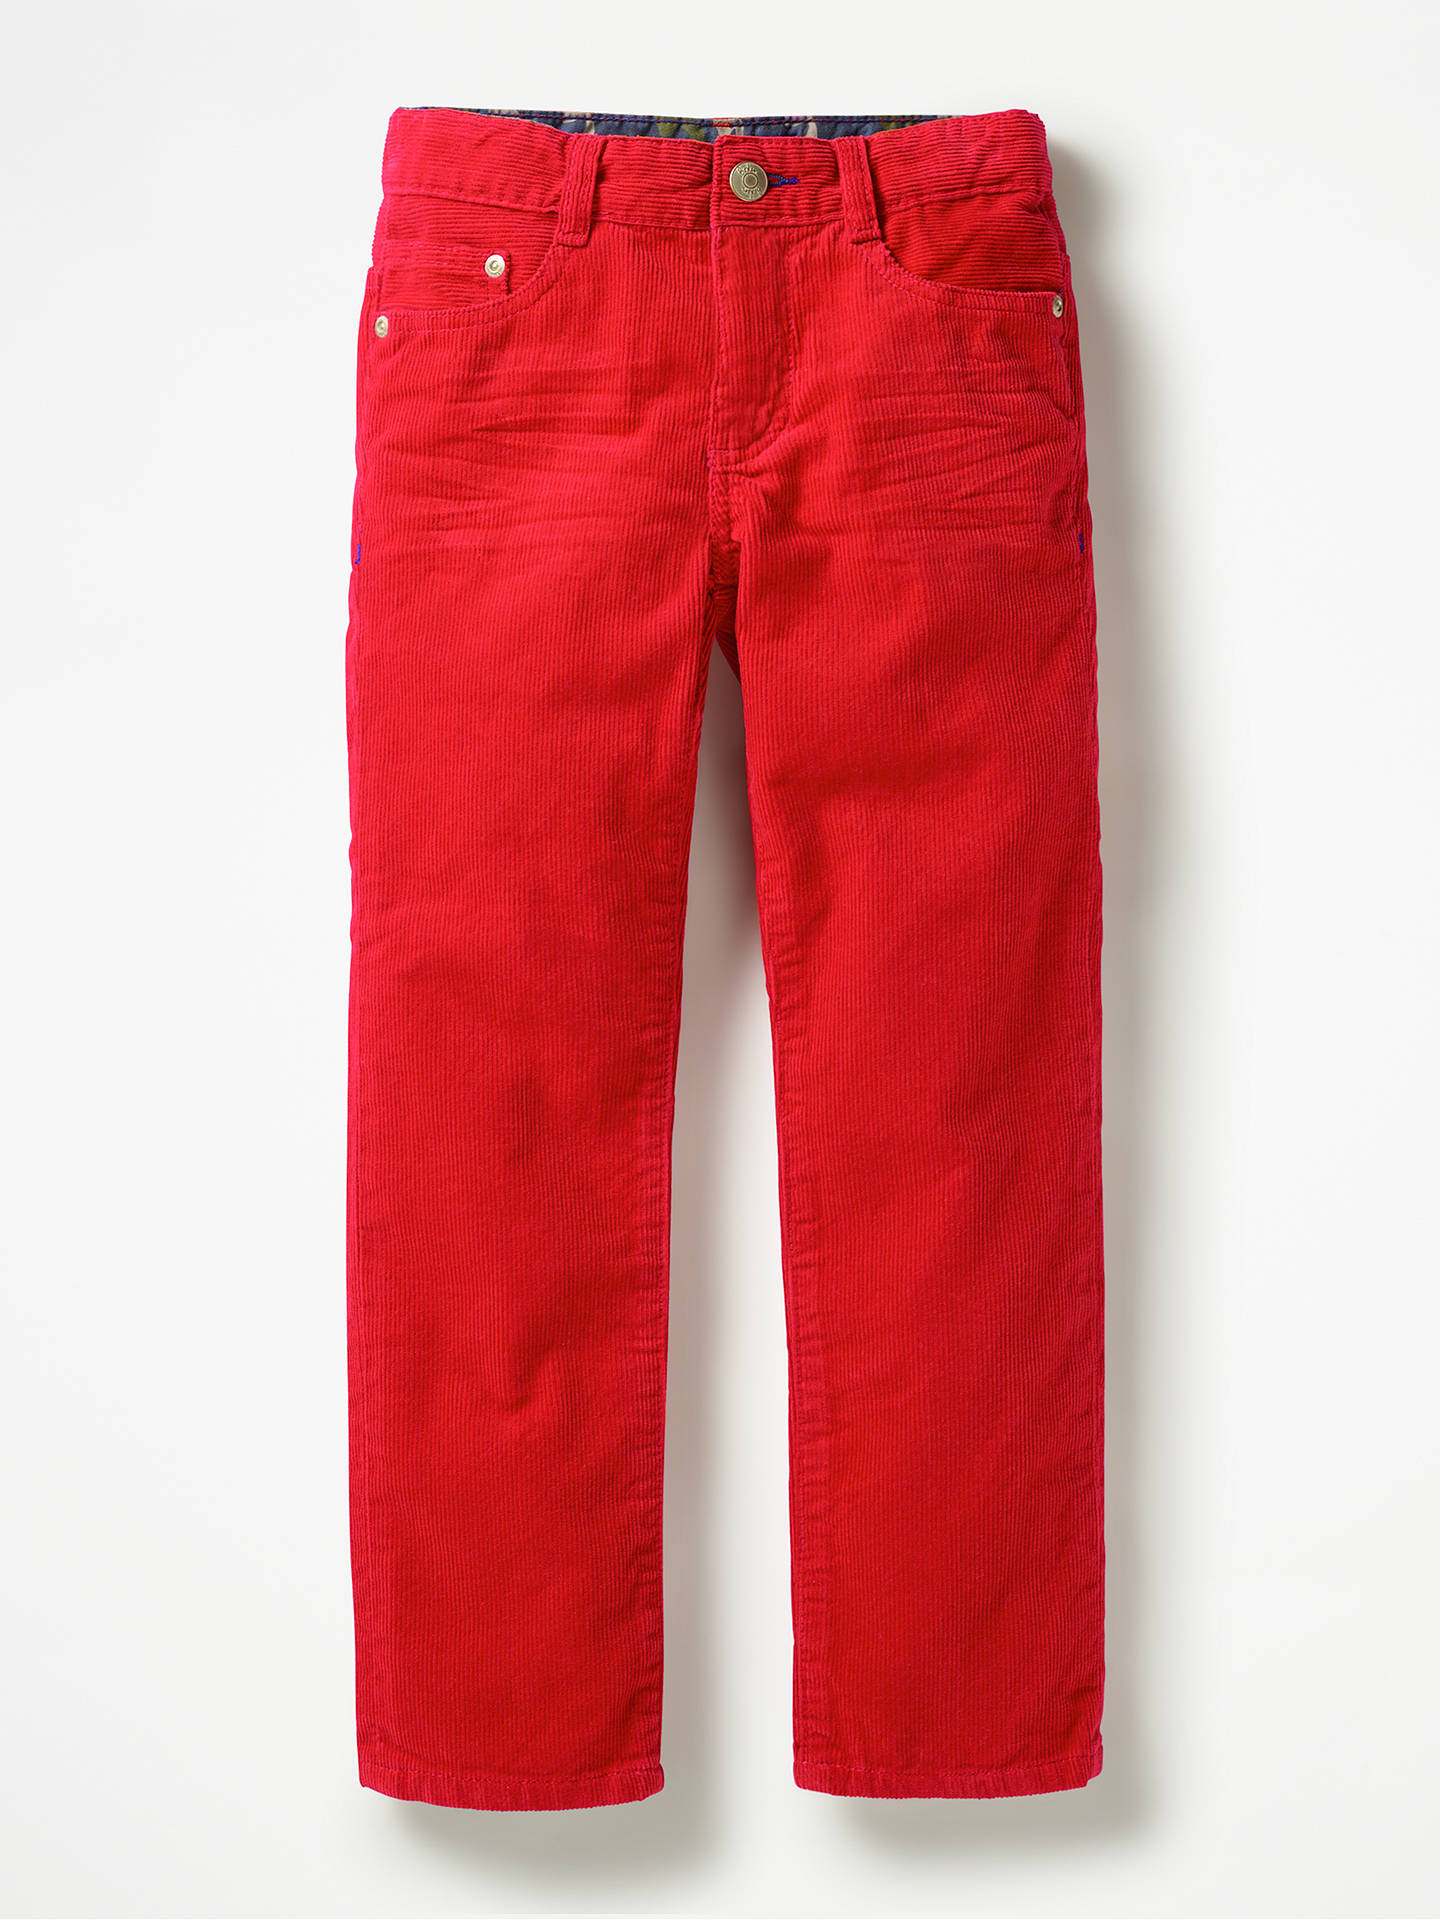 73978f009 Buy Mini Boden Boys' Slim Corduroy Jeans, Candy Apple Red, 4 years Online